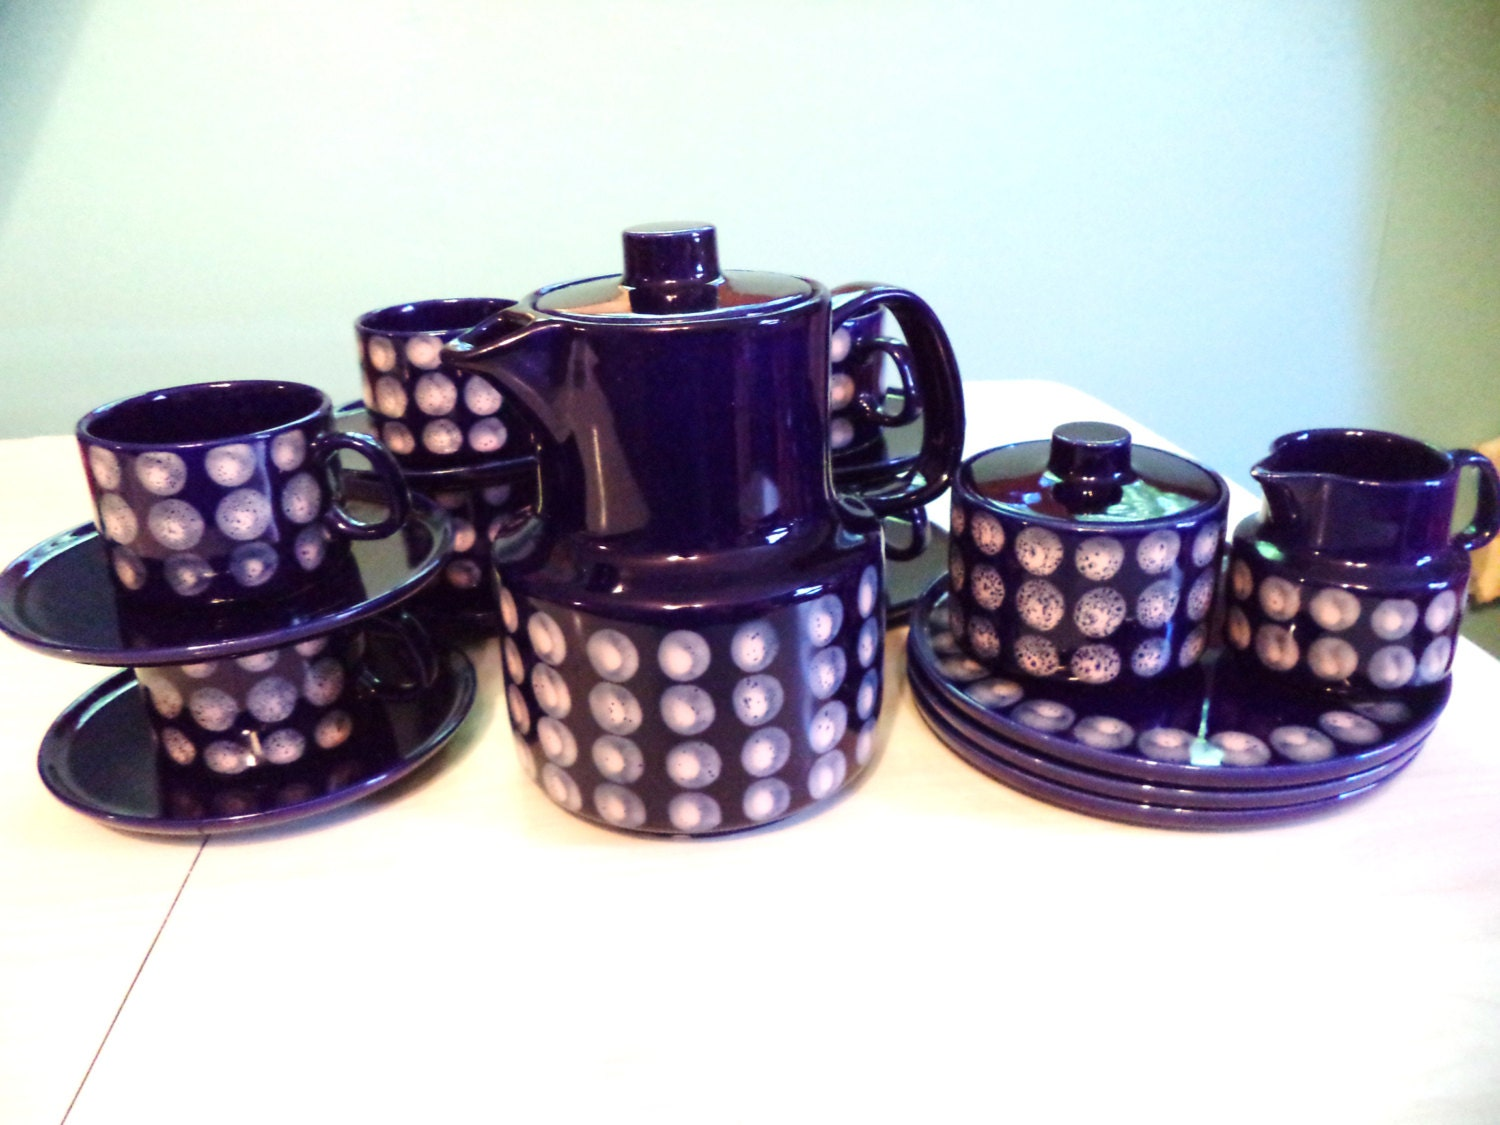 vintage melitta coffee set coffee pot cups and saucers plates. Black Bedroom Furniture Sets. Home Design Ideas